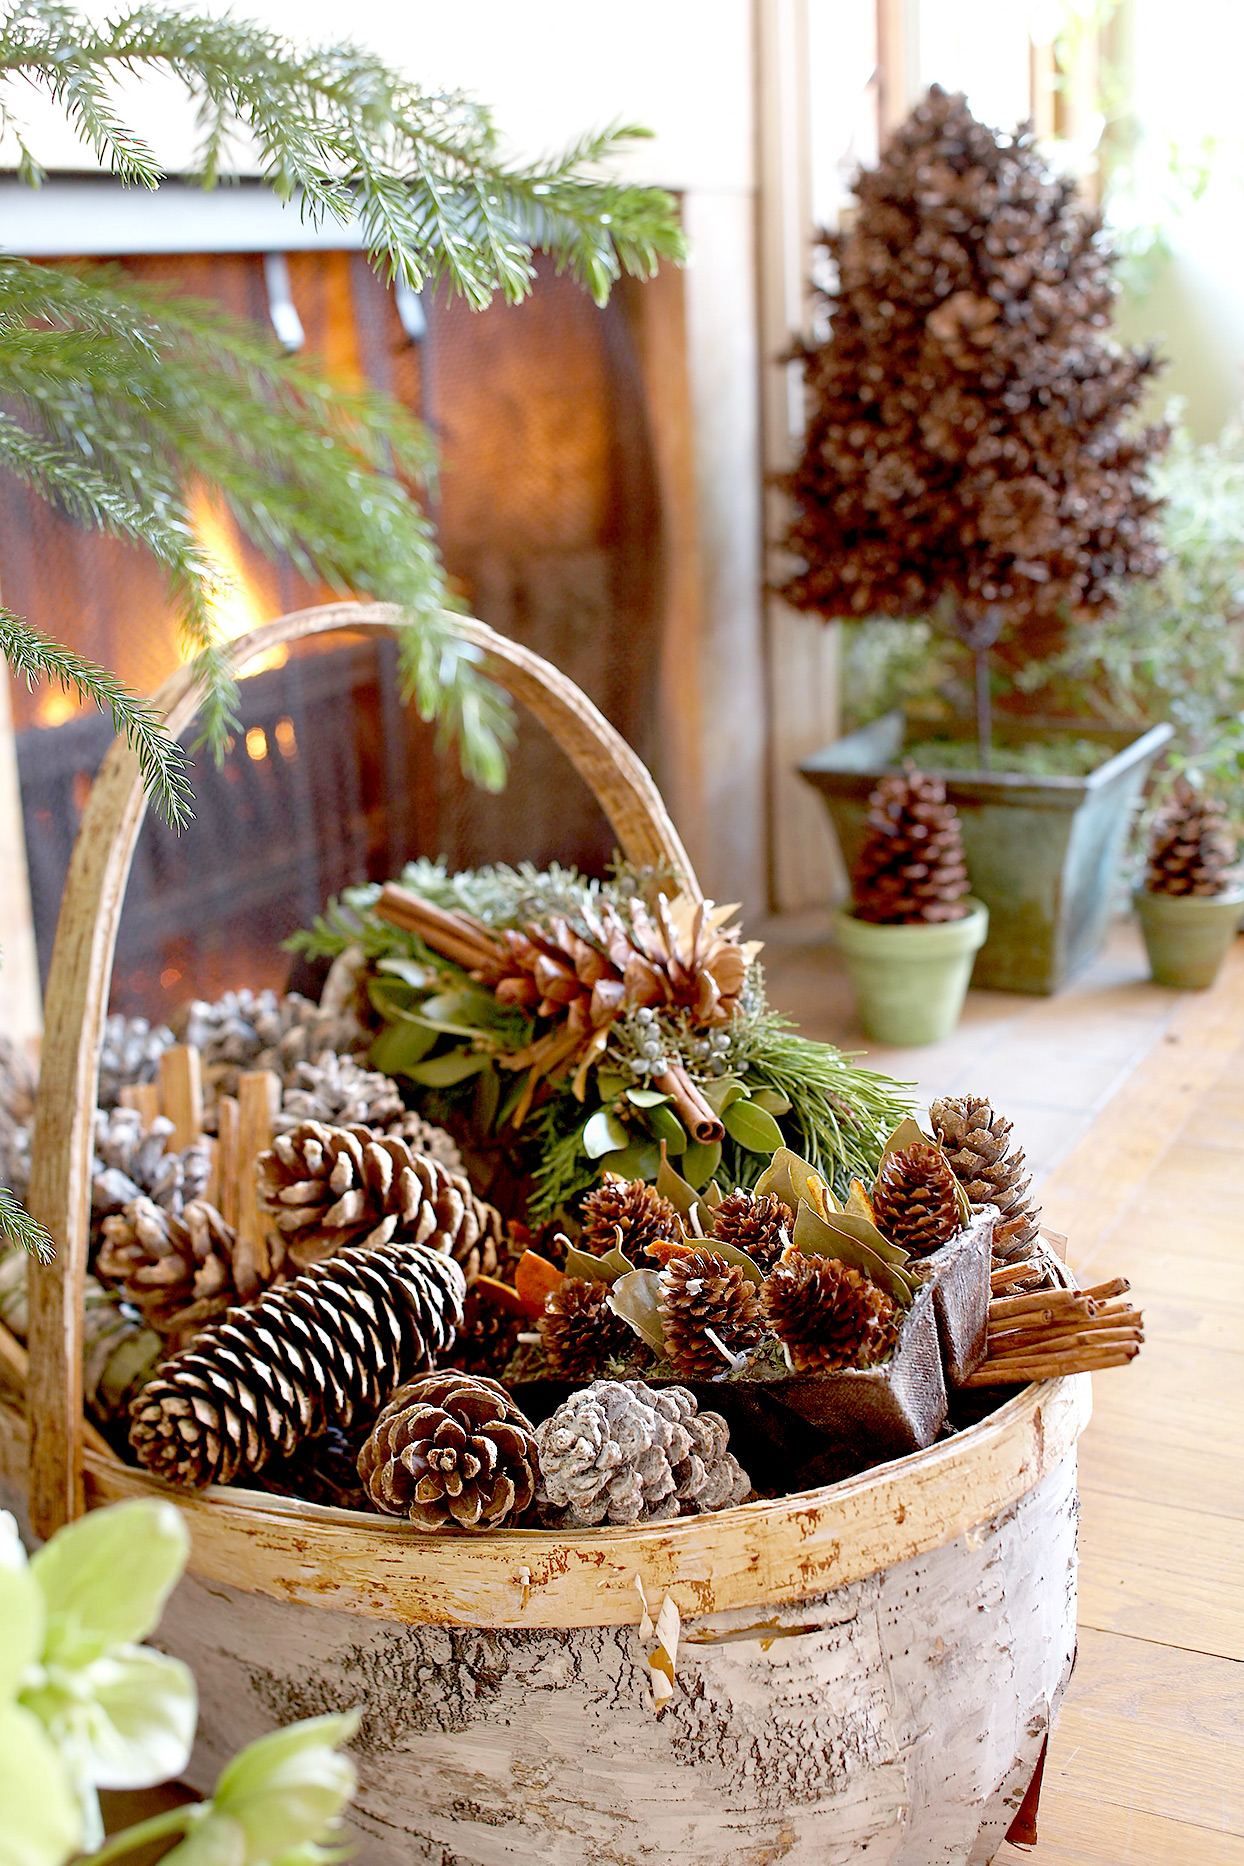 Basket near fireplace filled with pinecones